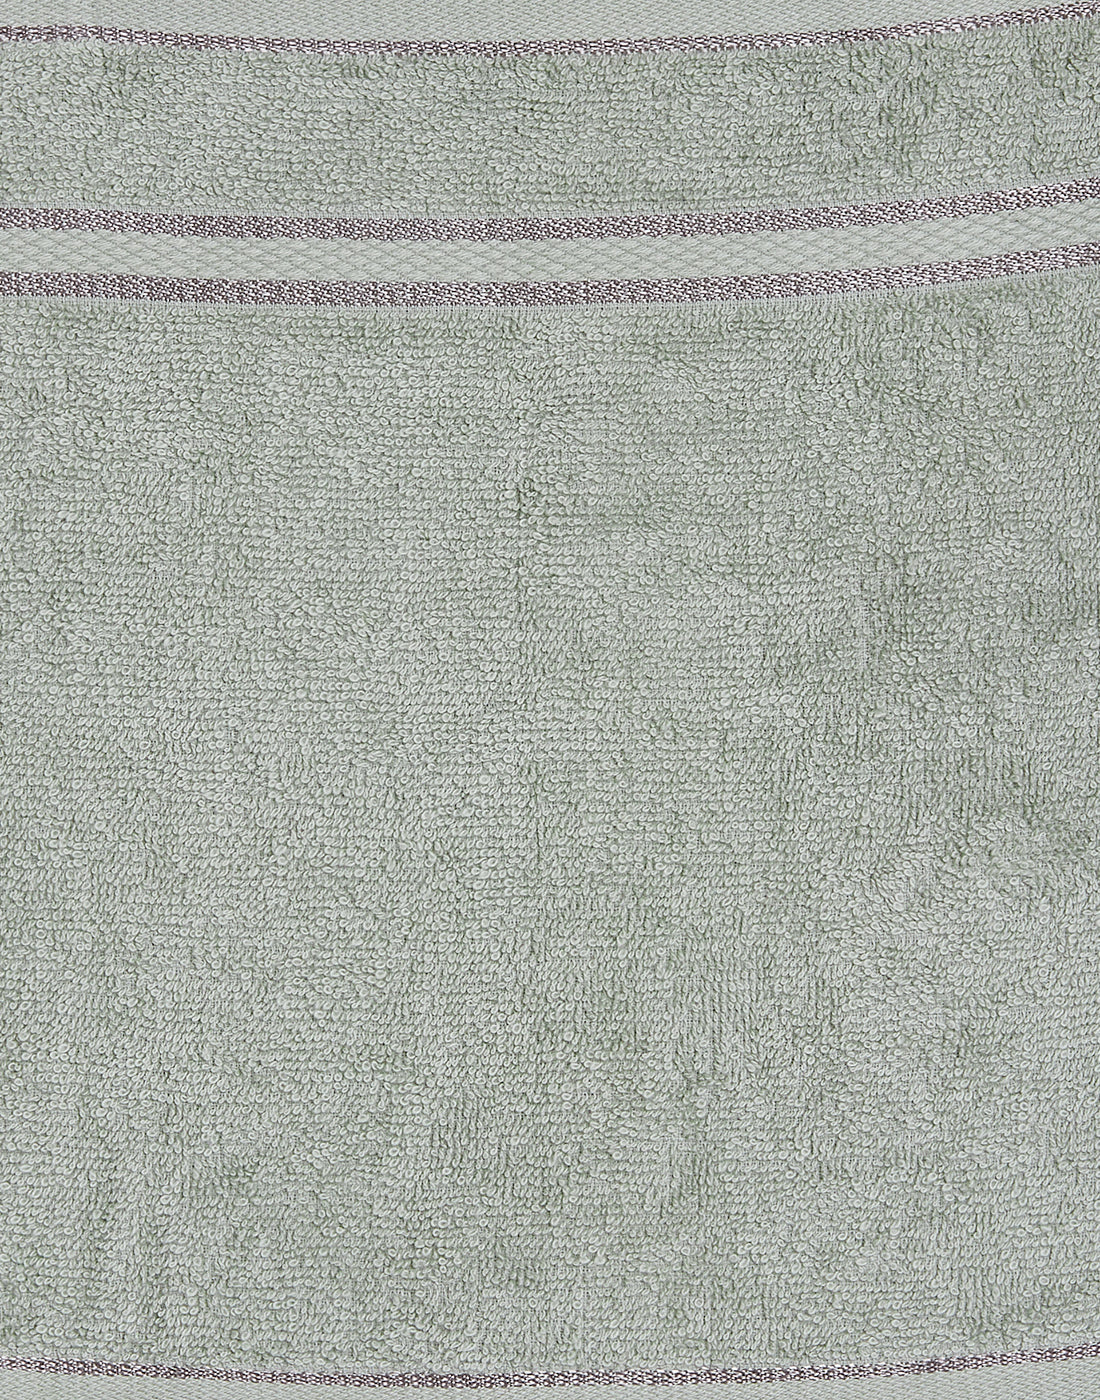 Octave Light Olive Set of 4 Cotton Face Towels